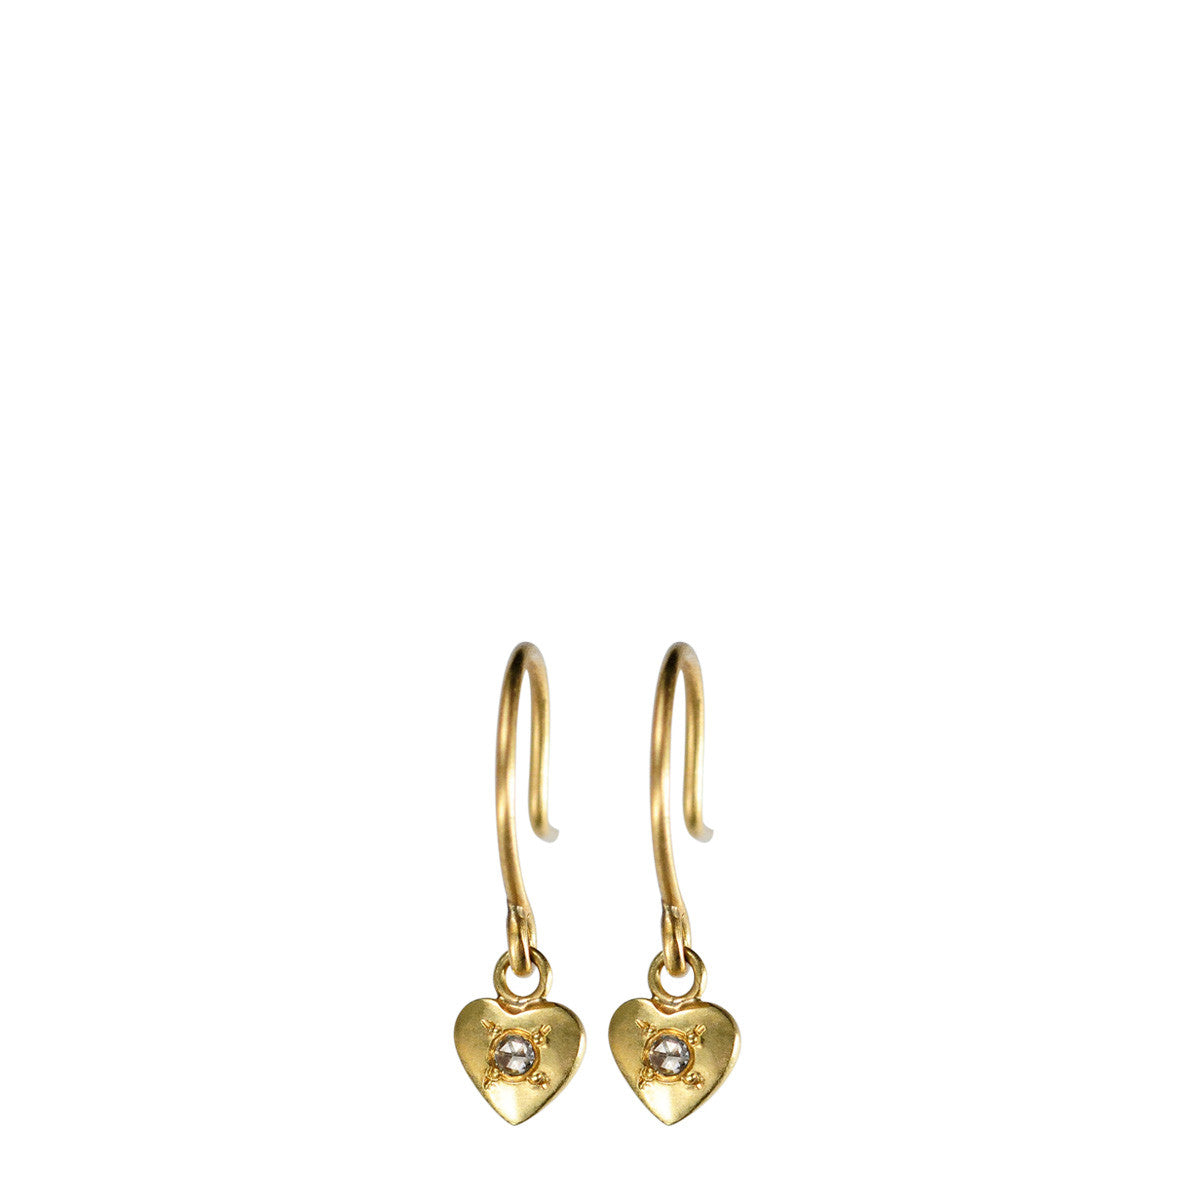 18K Gold Heart Drop Earrings with Diamonds